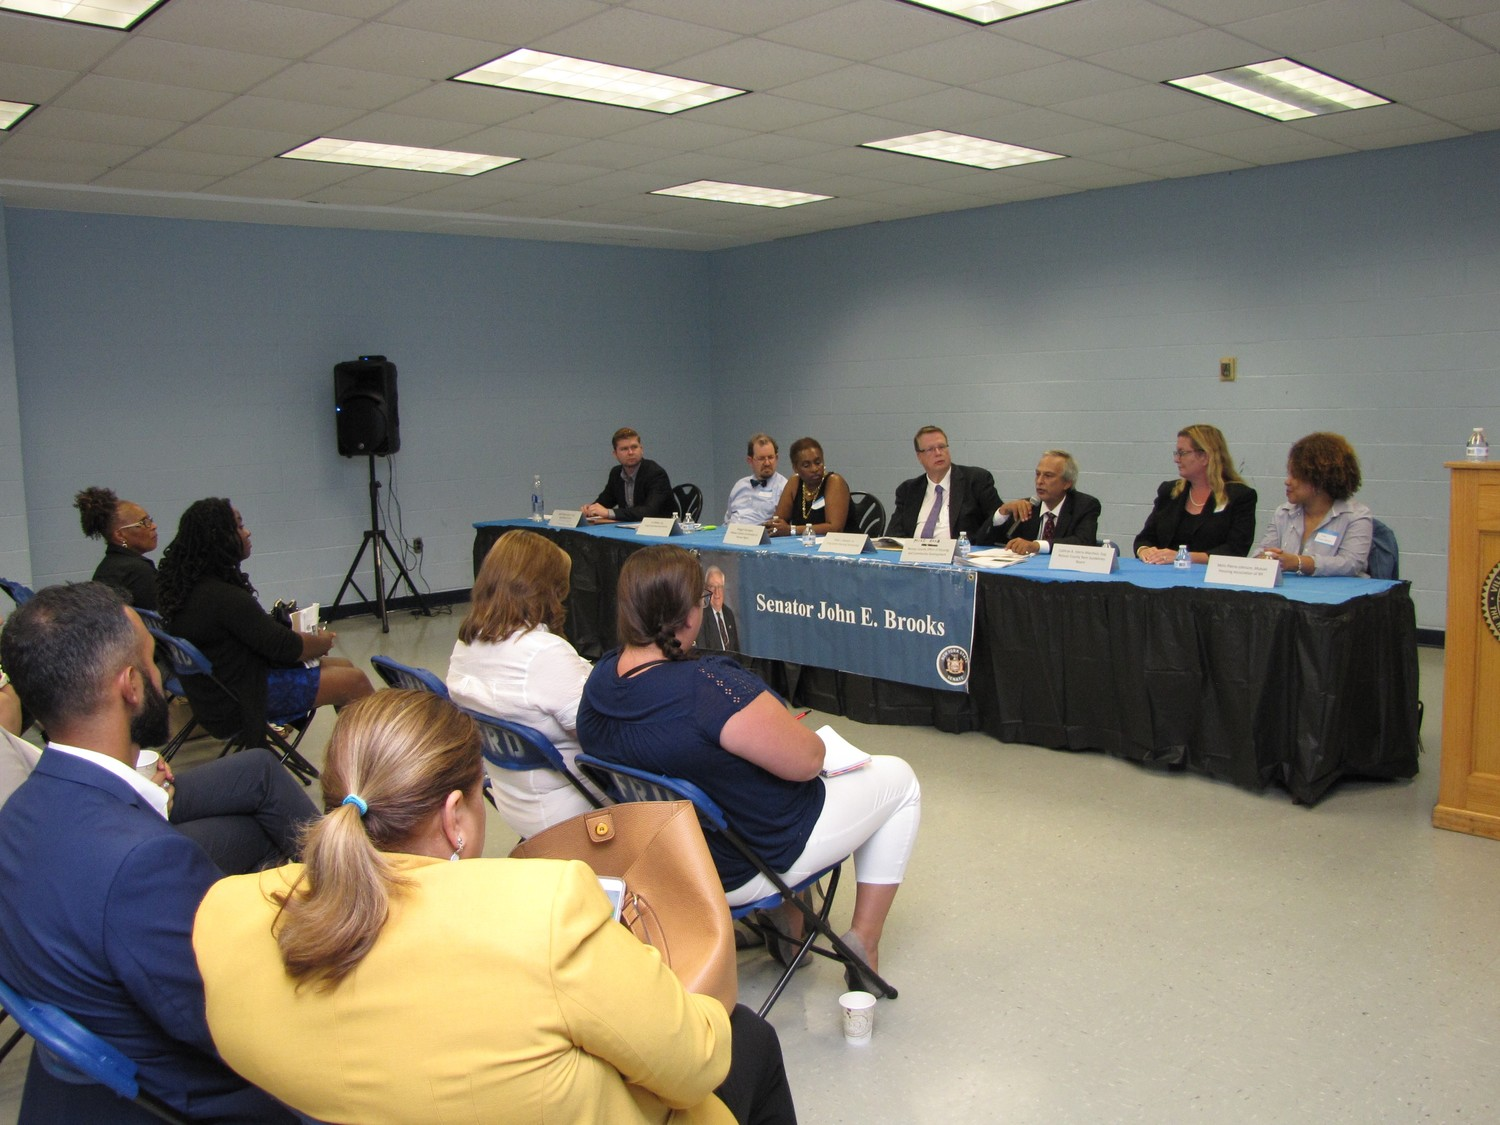 Nassau County housing experts took part in a housing rights and advocacy seminar at the Freeport Recreation Center on Monday and addressed a wide range of housing issues, including zombie homes.